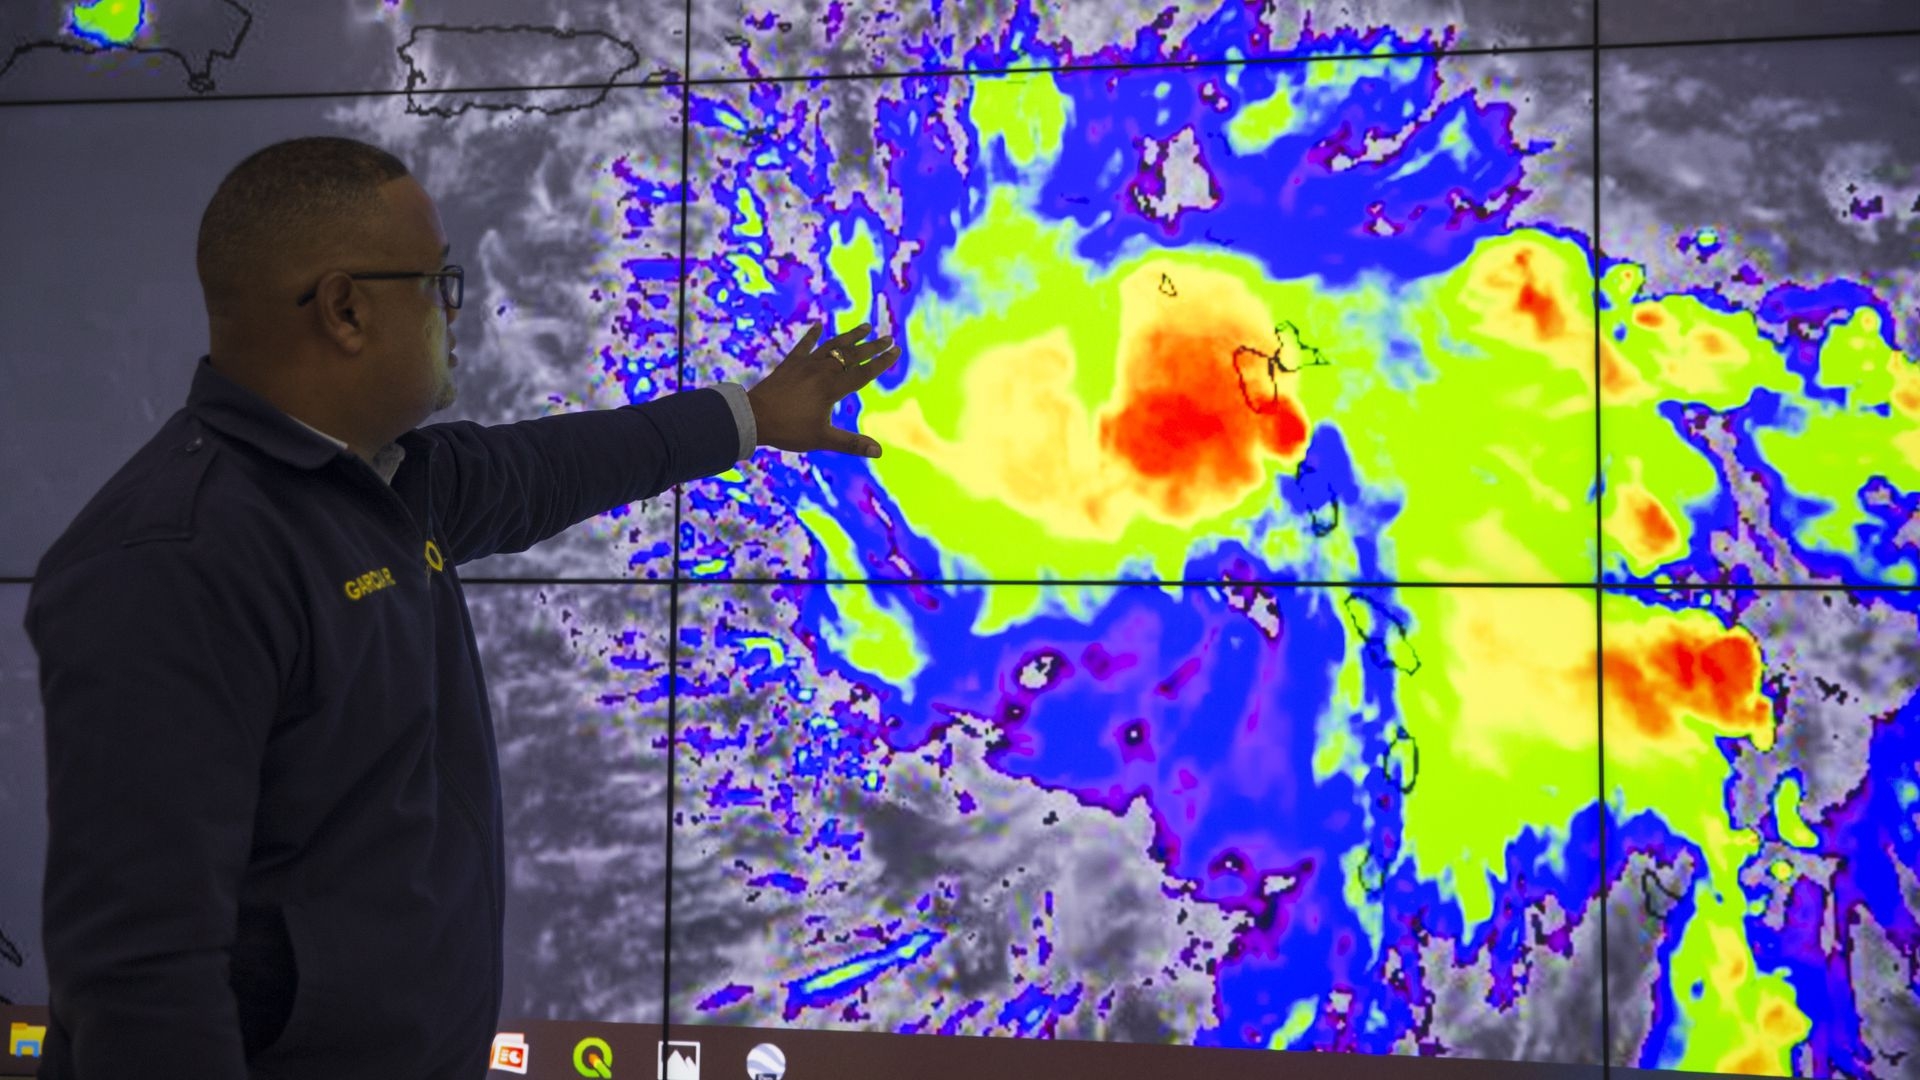 In this image, a man outstretches a hand towards a weather map that shows a tropical storm in different colors